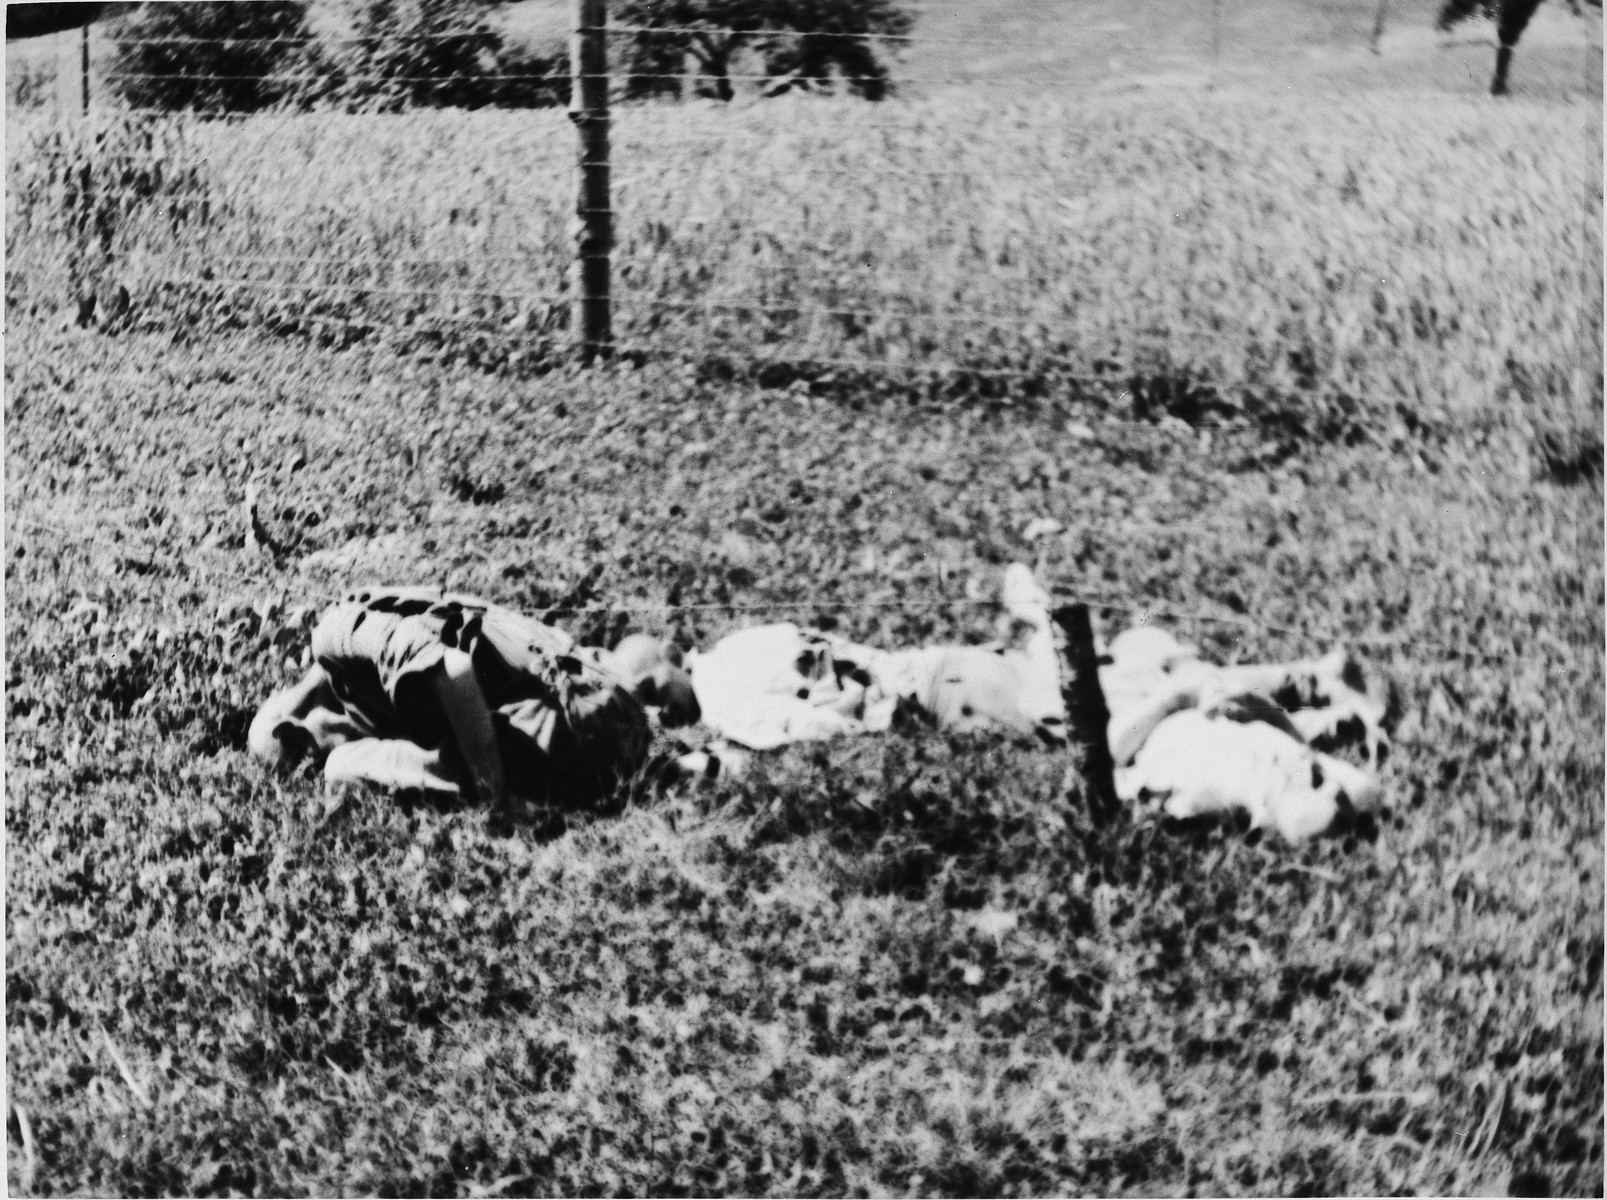 View of the bodies of former prisoners lying near the barbed wire fence in the Mauthausen concentration camp.